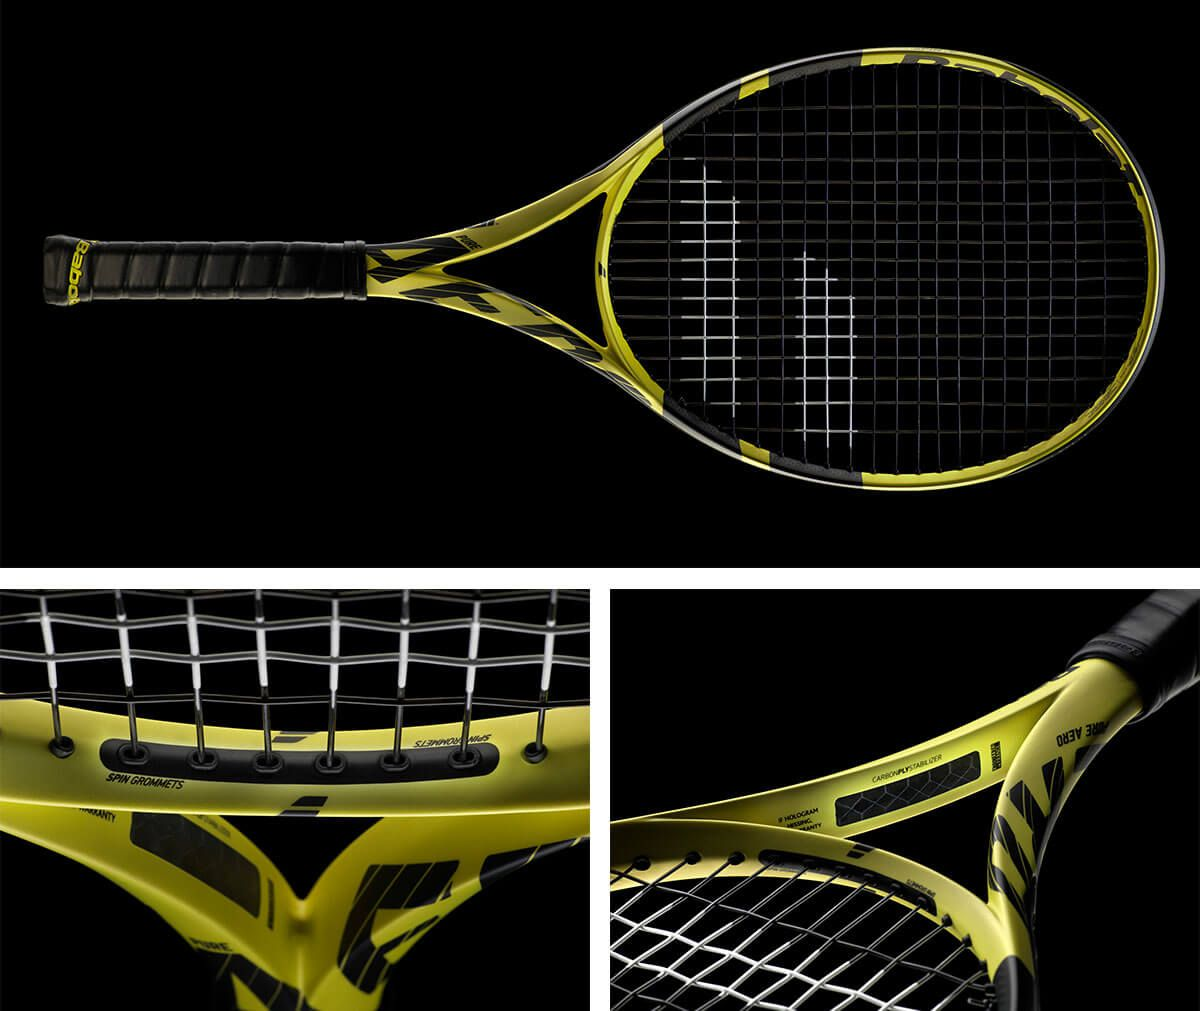 Rafael Nadal Racquet 2019 –Babolat 2019 Pure Aero Tennis Racquet best x-mas  gift idea for tennis players cheap and quality  e5fd25c5df028